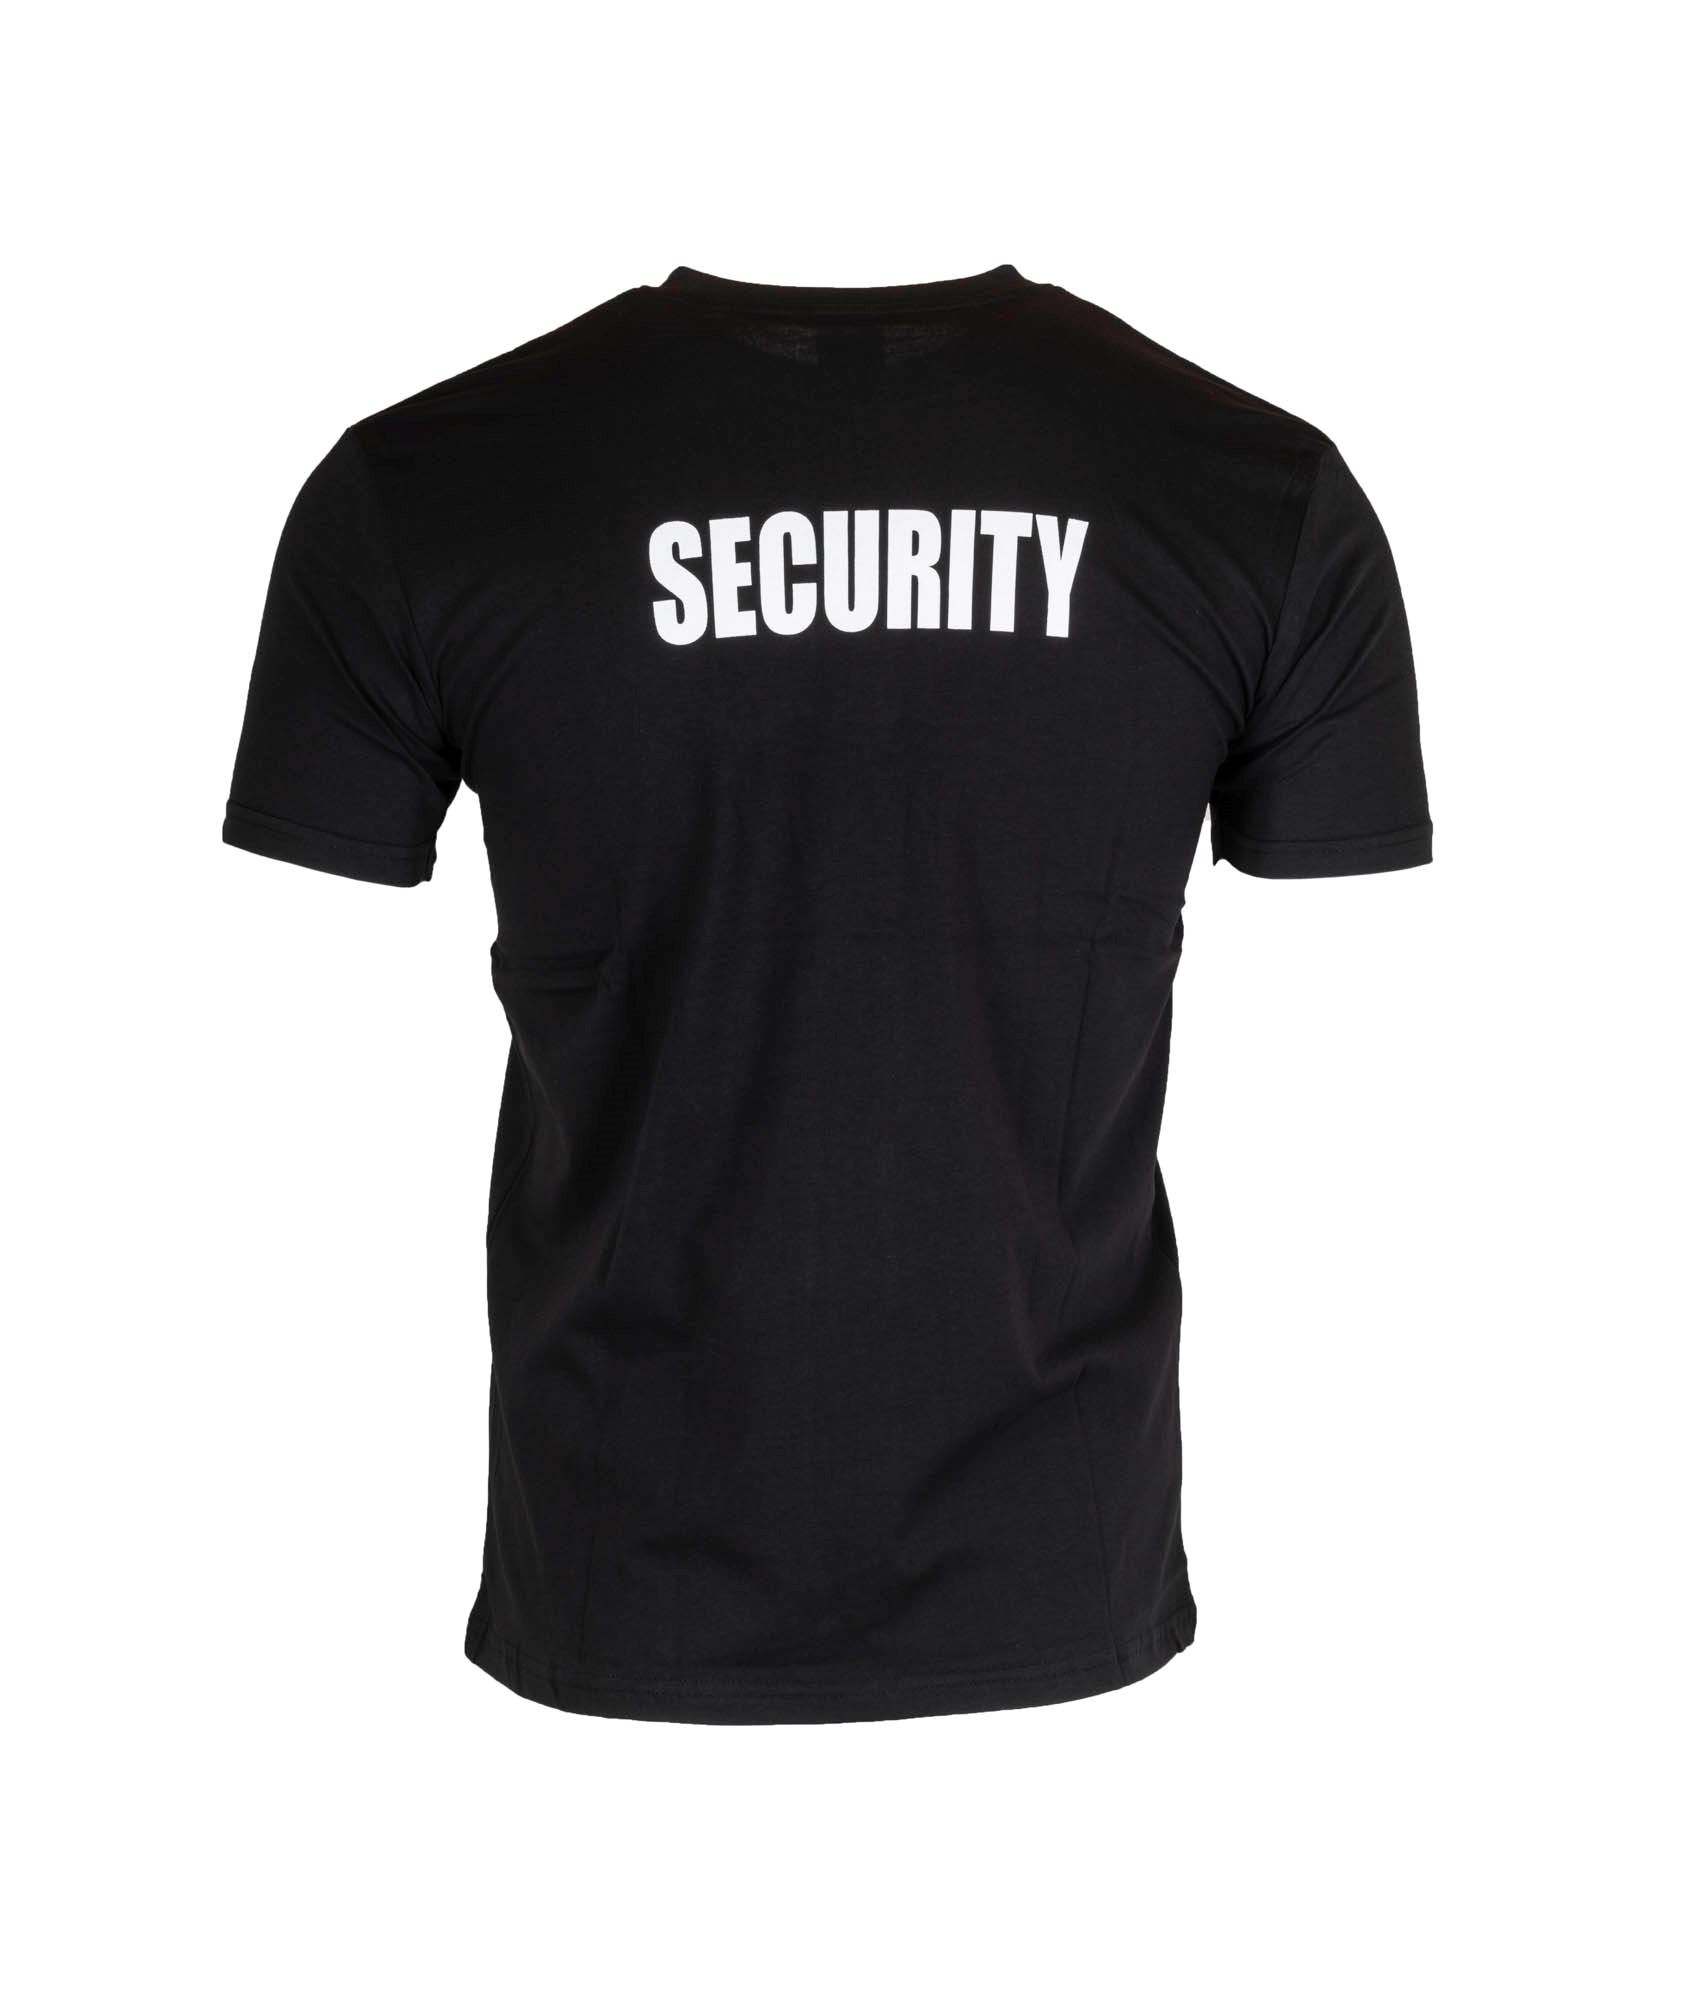 SECURITY t-shirt i sort